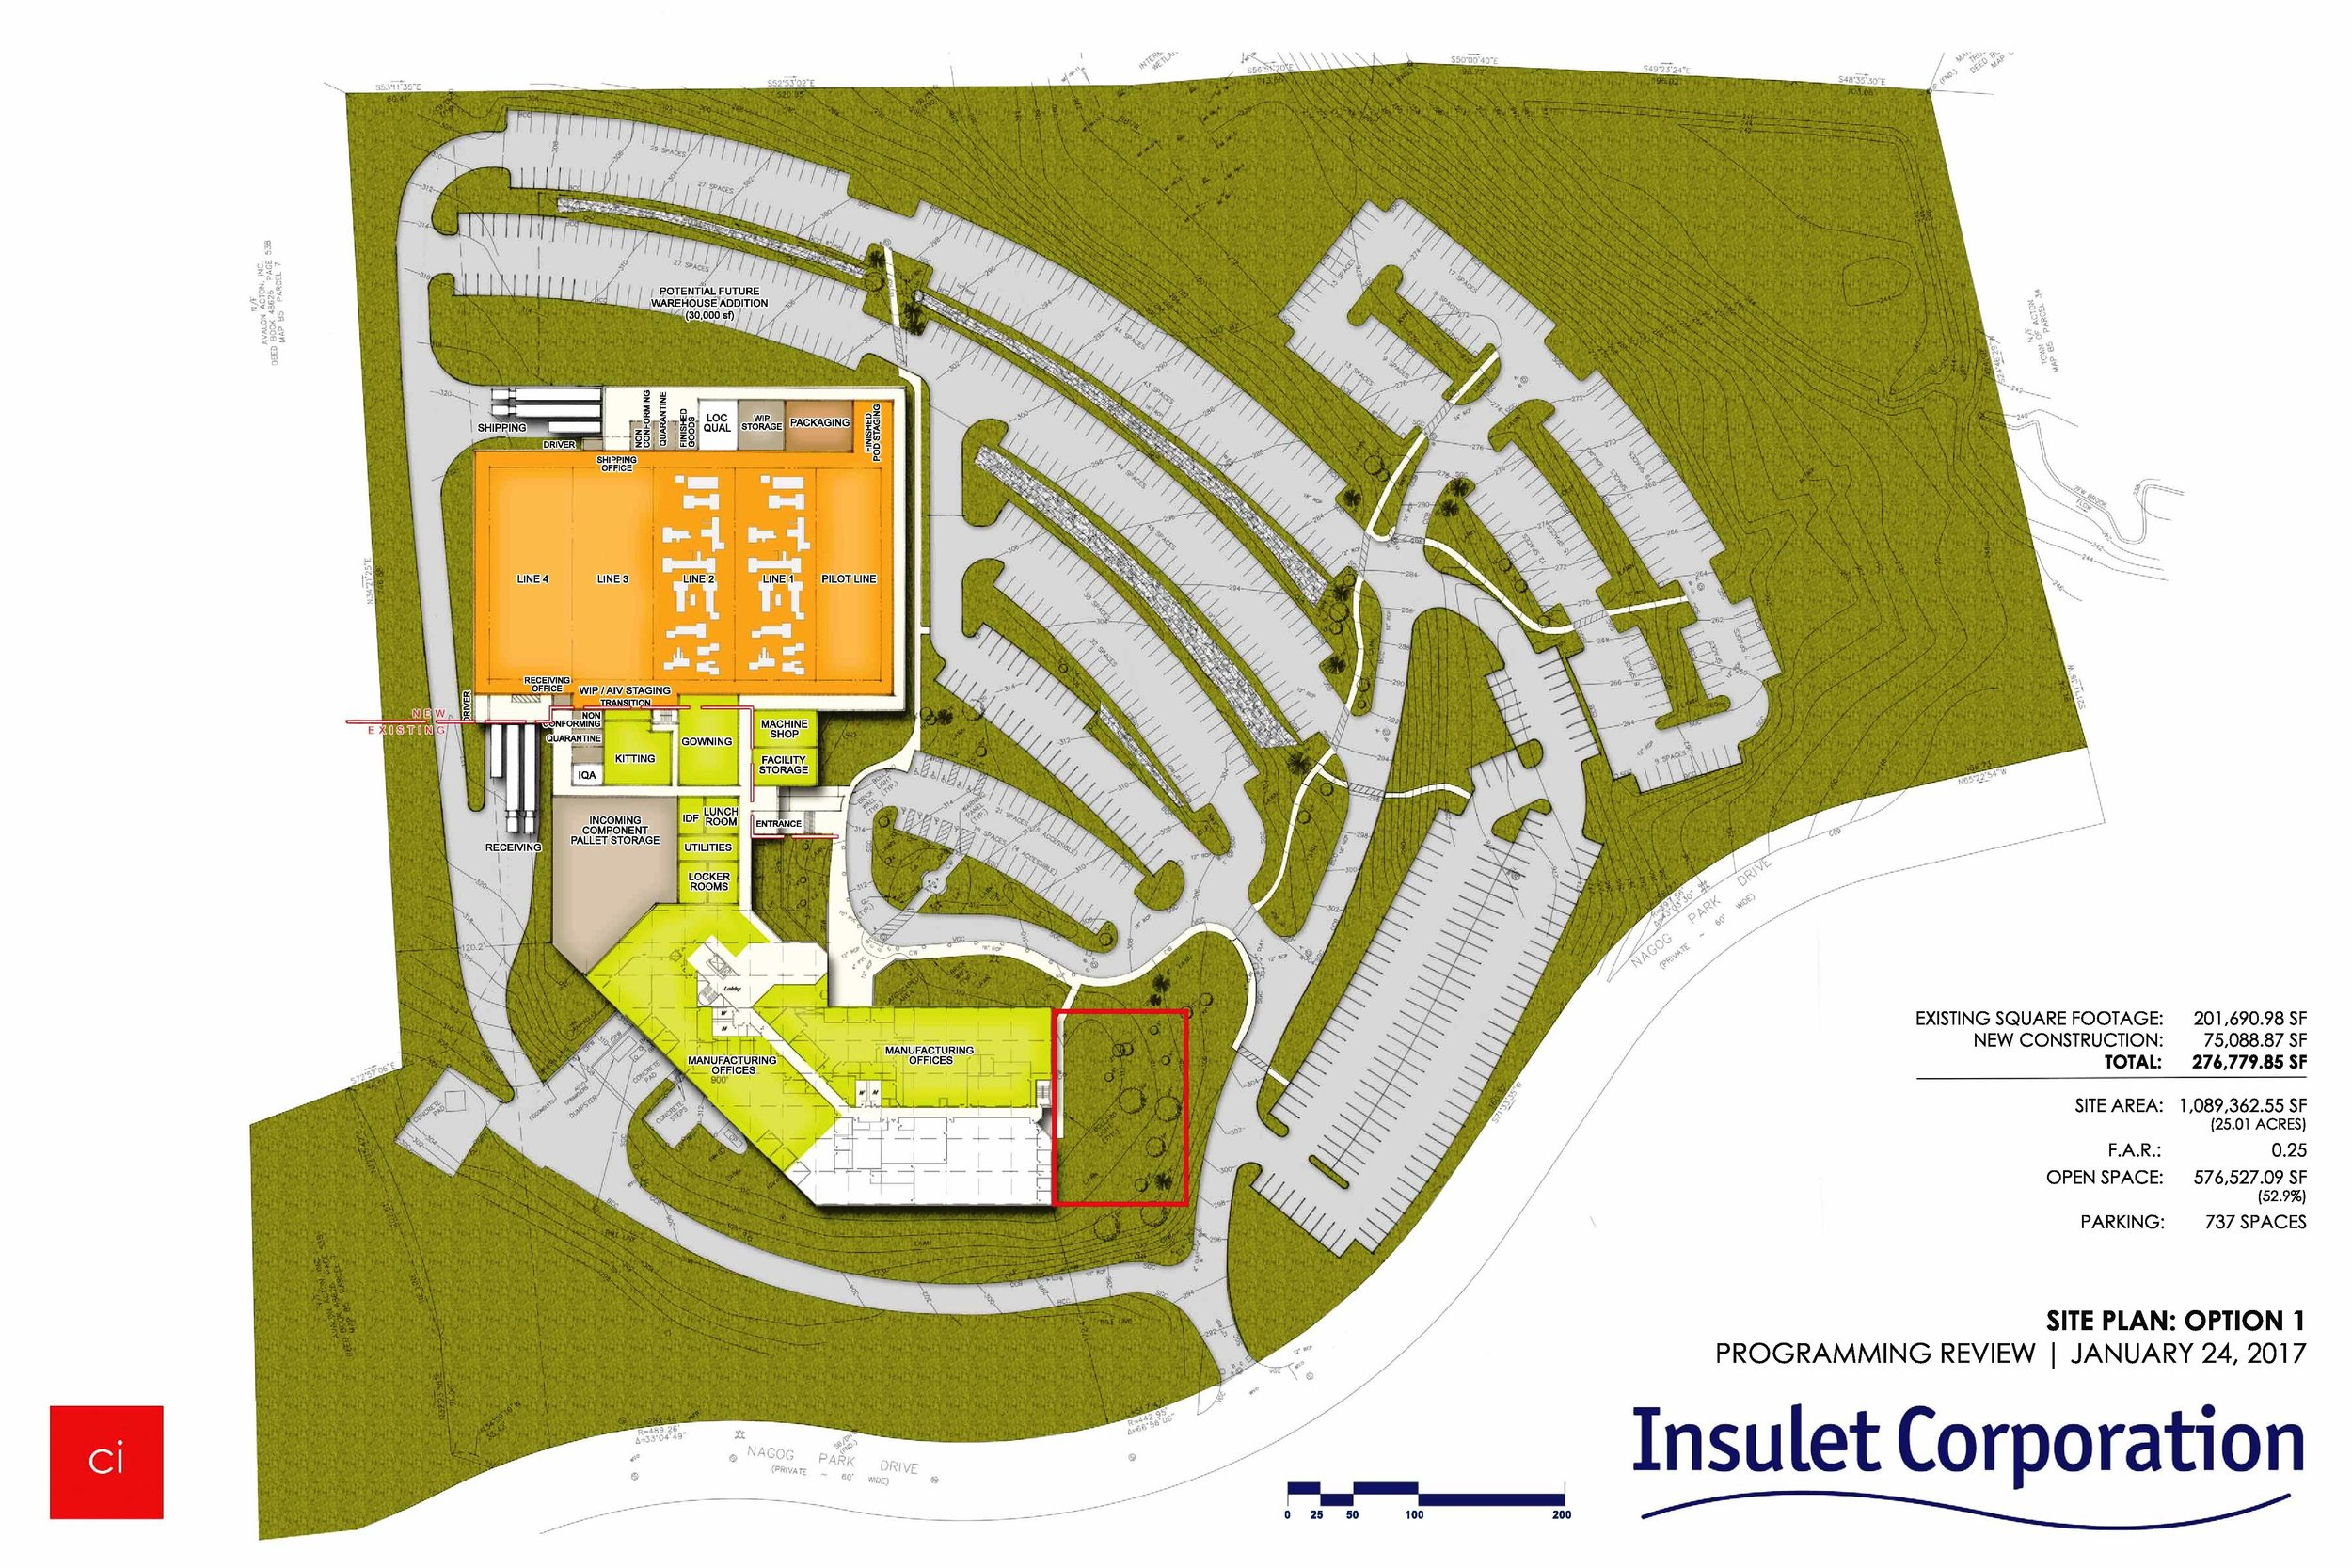 Insulet Corporation - RMA prepared a Traffic Impact and Access Study for a proposed re-use and expansion of an existing office building located on Nagog Park Drive in Acton, Massachusetts.  The prior 201,690 square foot office building was to be re-used and expanded to house the corporate offices of Insulet Corporation.  The expanded building will be 380,859 square feet in size and contain a total of 242,822 square feet of office space, 108,421 square feet of square feet of manufacturing space, and 29,616 square feet of warehousing space.